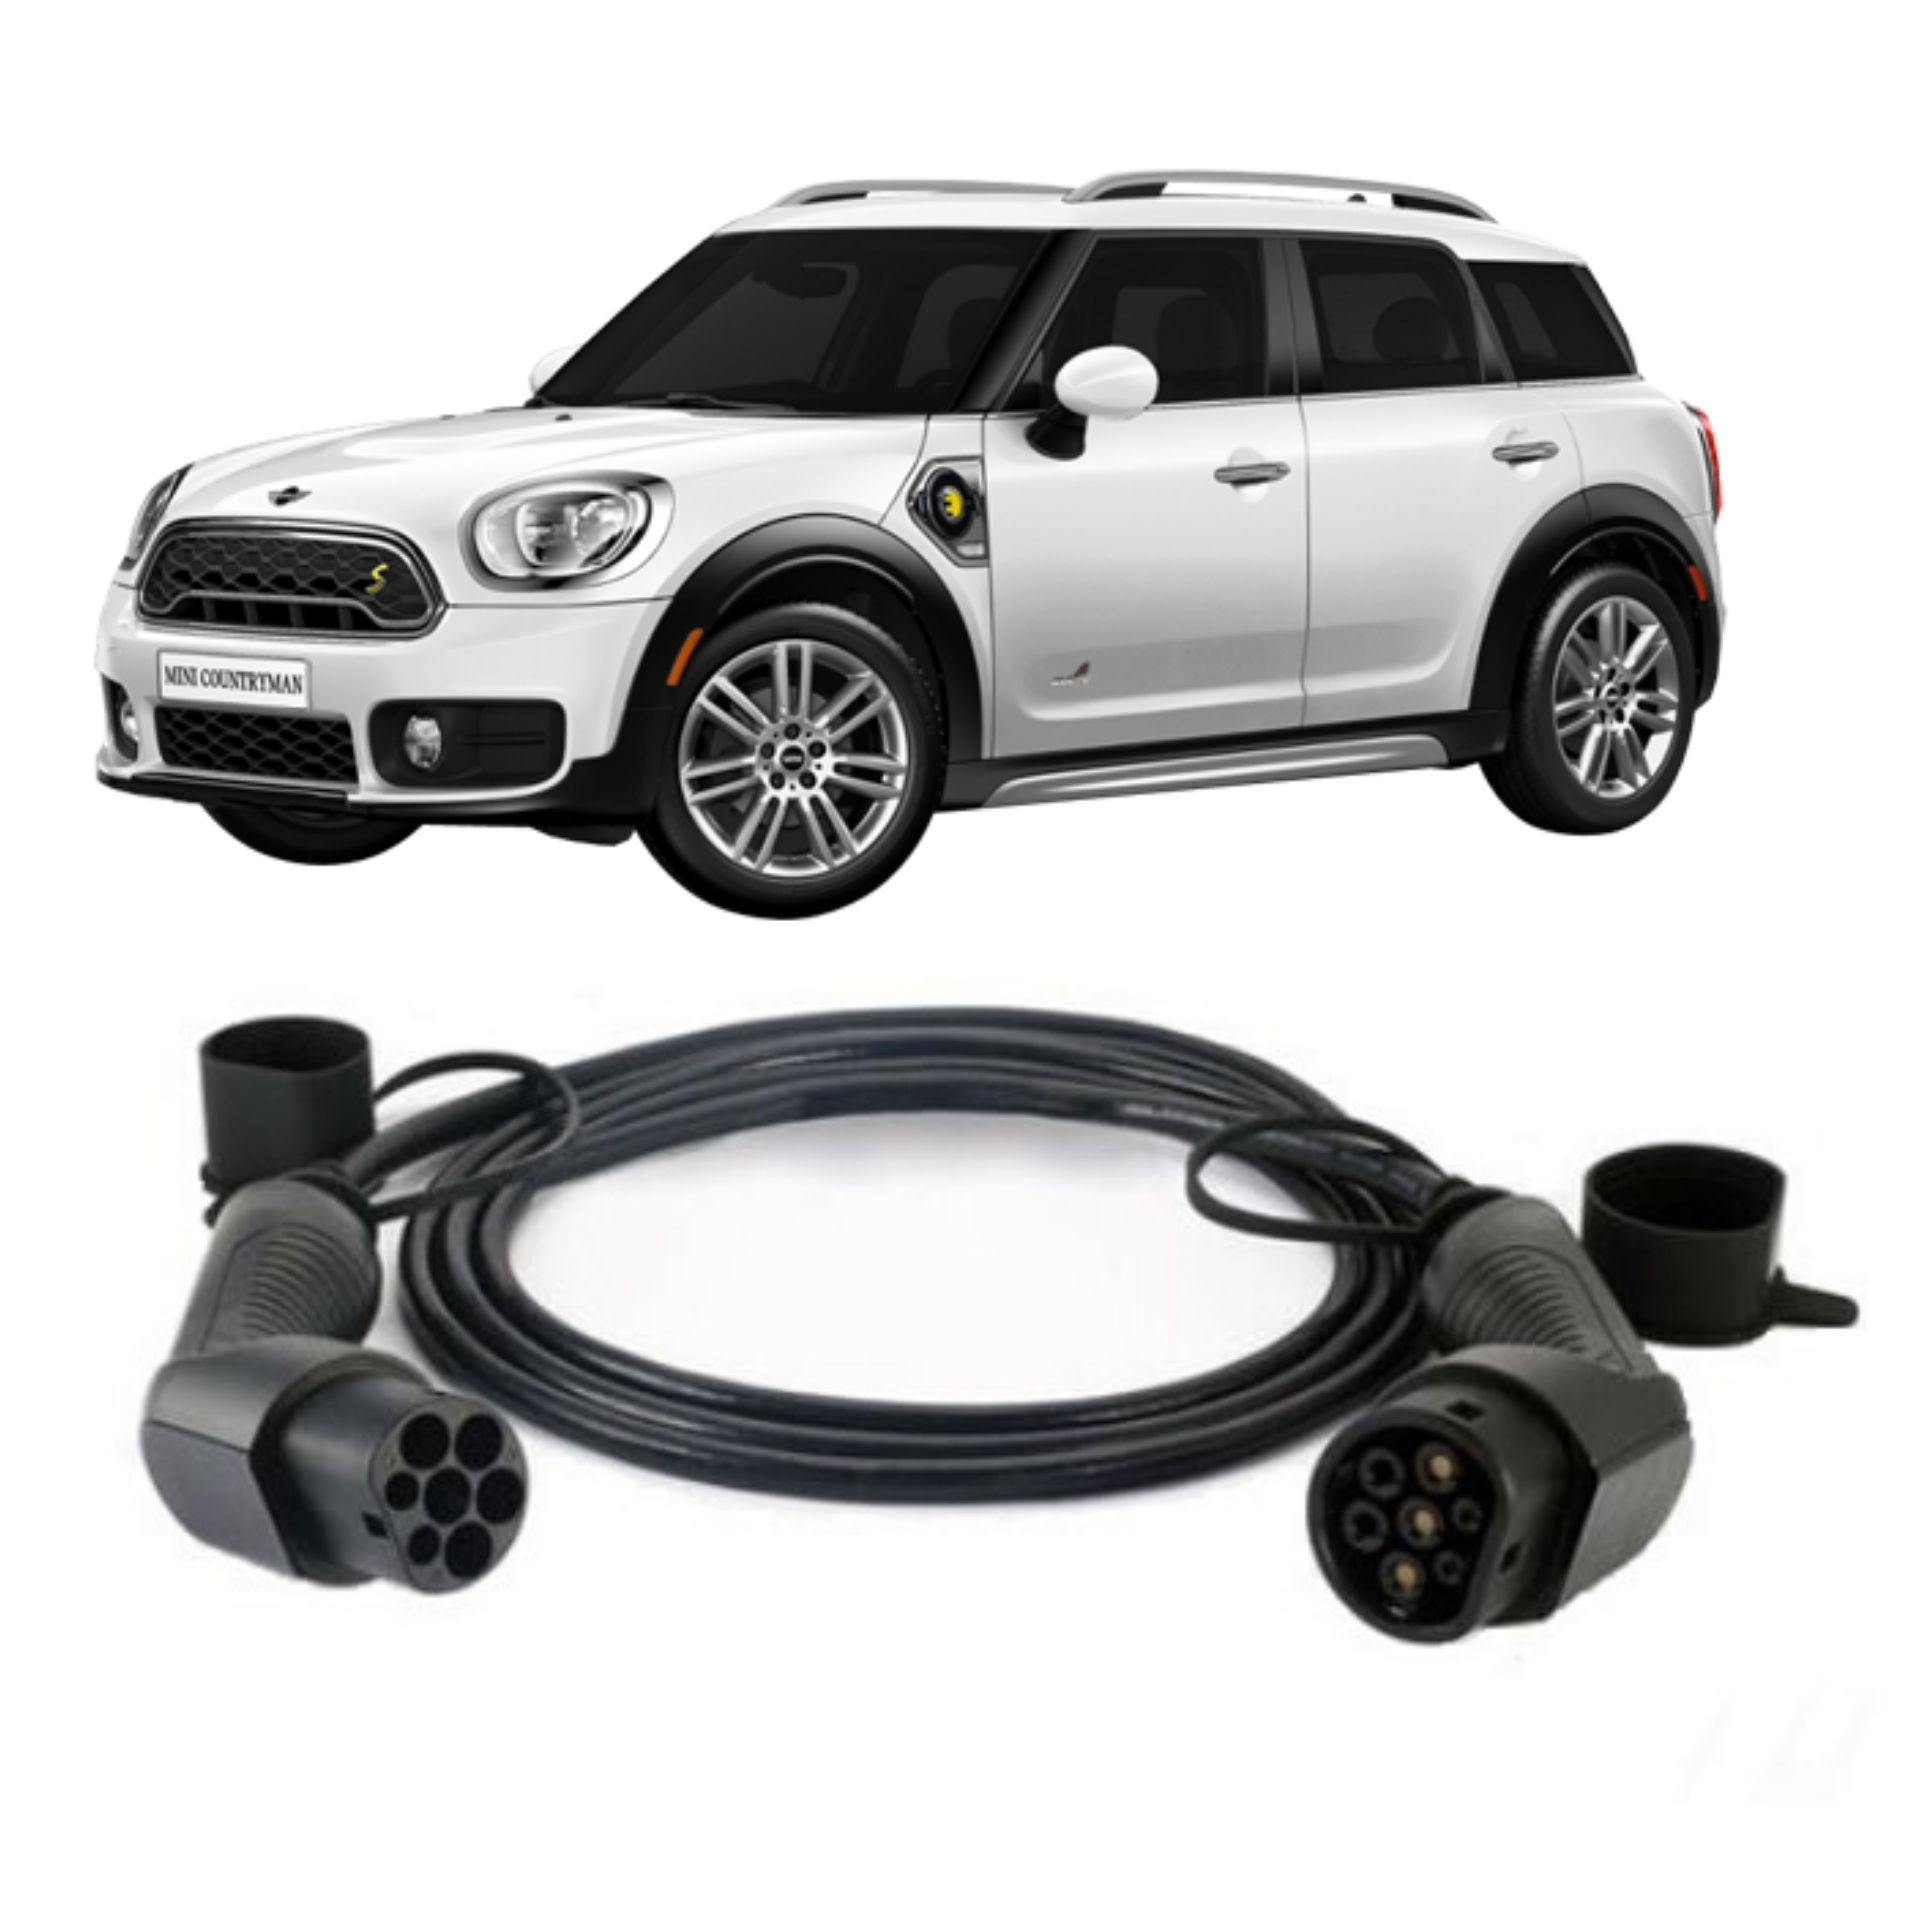 case all4 PHEV fast Charging Cable 32amp 5m Type 2 MINI Countryman SE